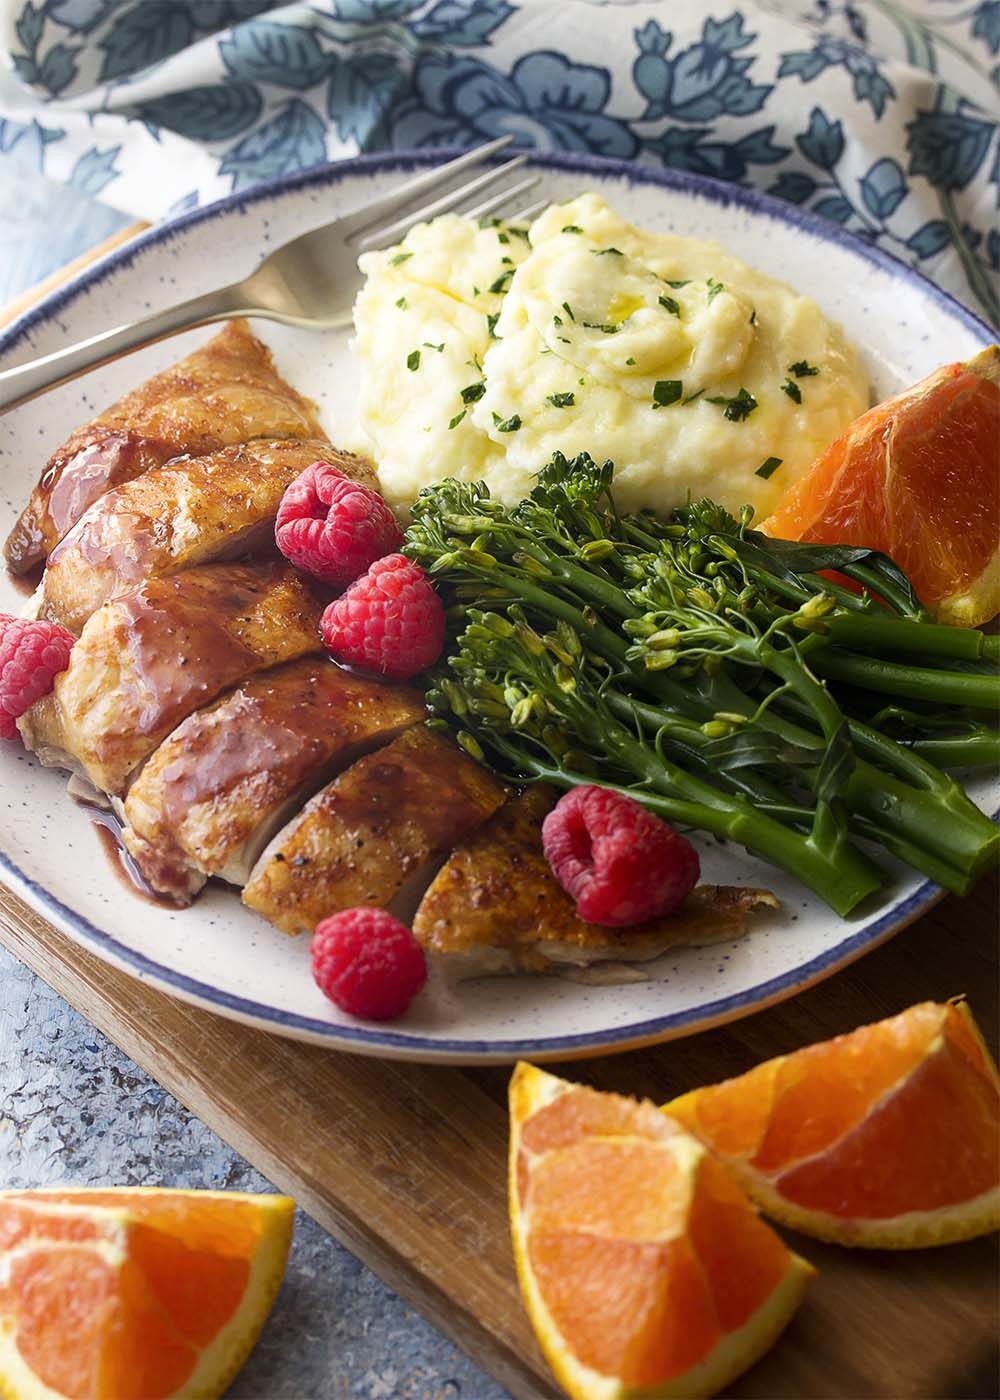 Sliced duck breast on a plate with mashed potatoes, broccolini, oranges, and raspberries.